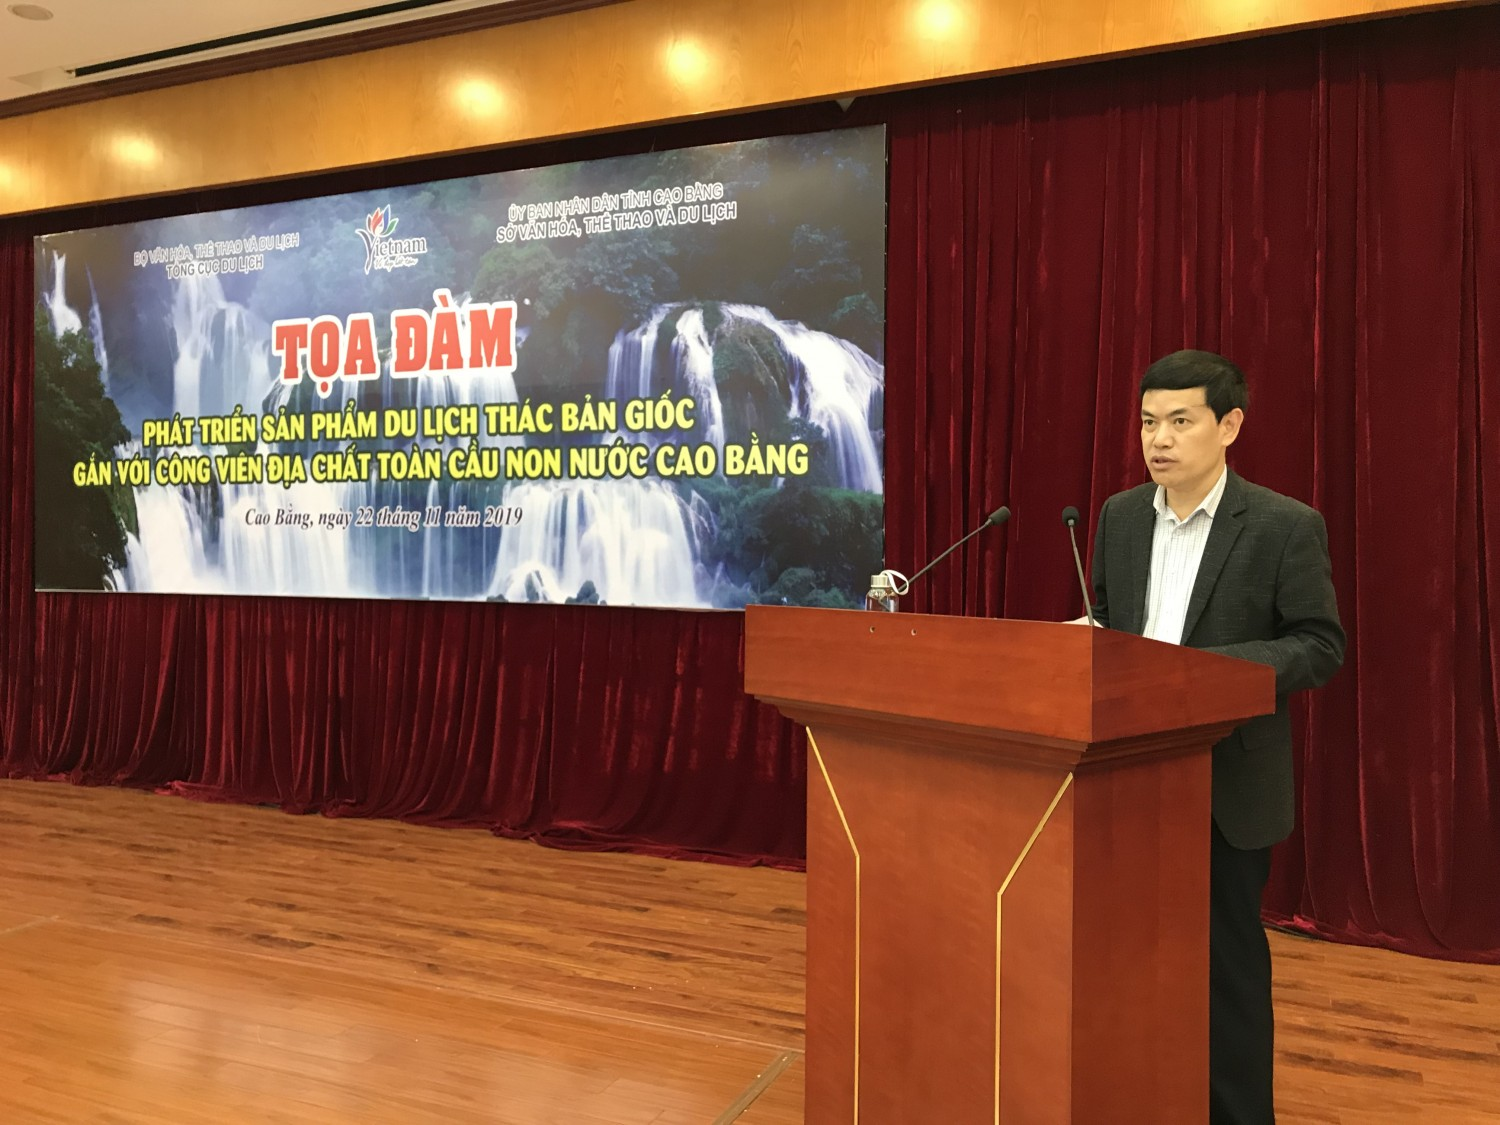 Mr. Sam Viet An, Director of Department of Culture, Sports and Tourism feedbacked to comments and concerns of tour operators.